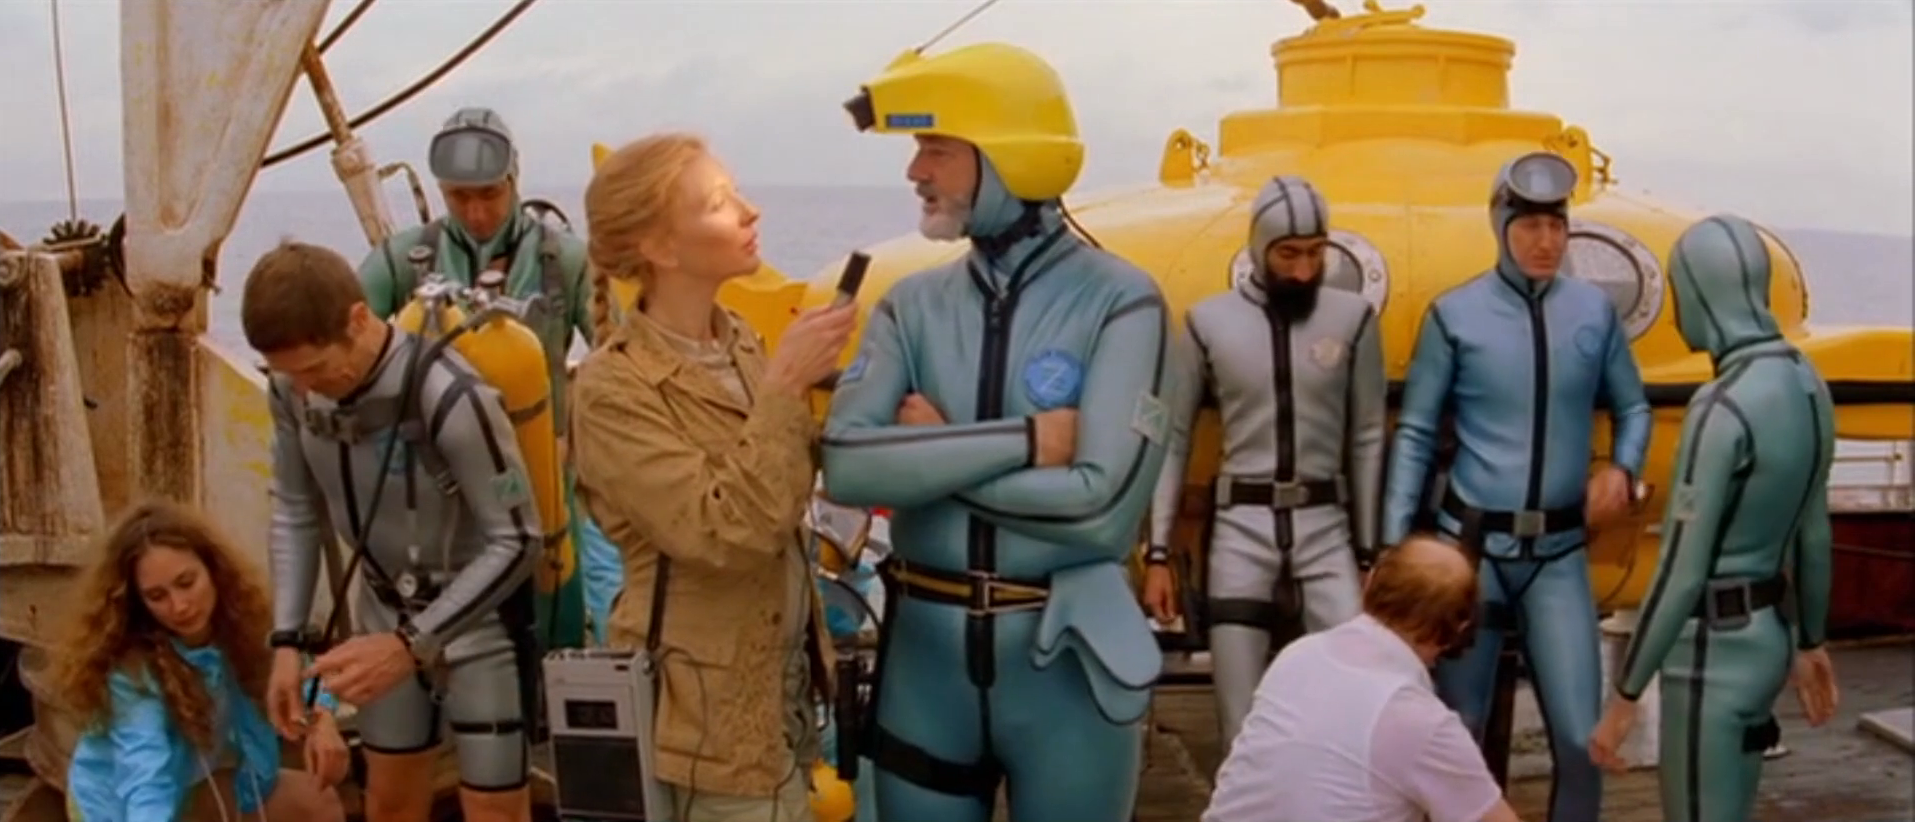 the wes anderson collection chapter the life aquatic the wes anderson collection chapter 4 the life aquatic steve zissou mzs roger ebert